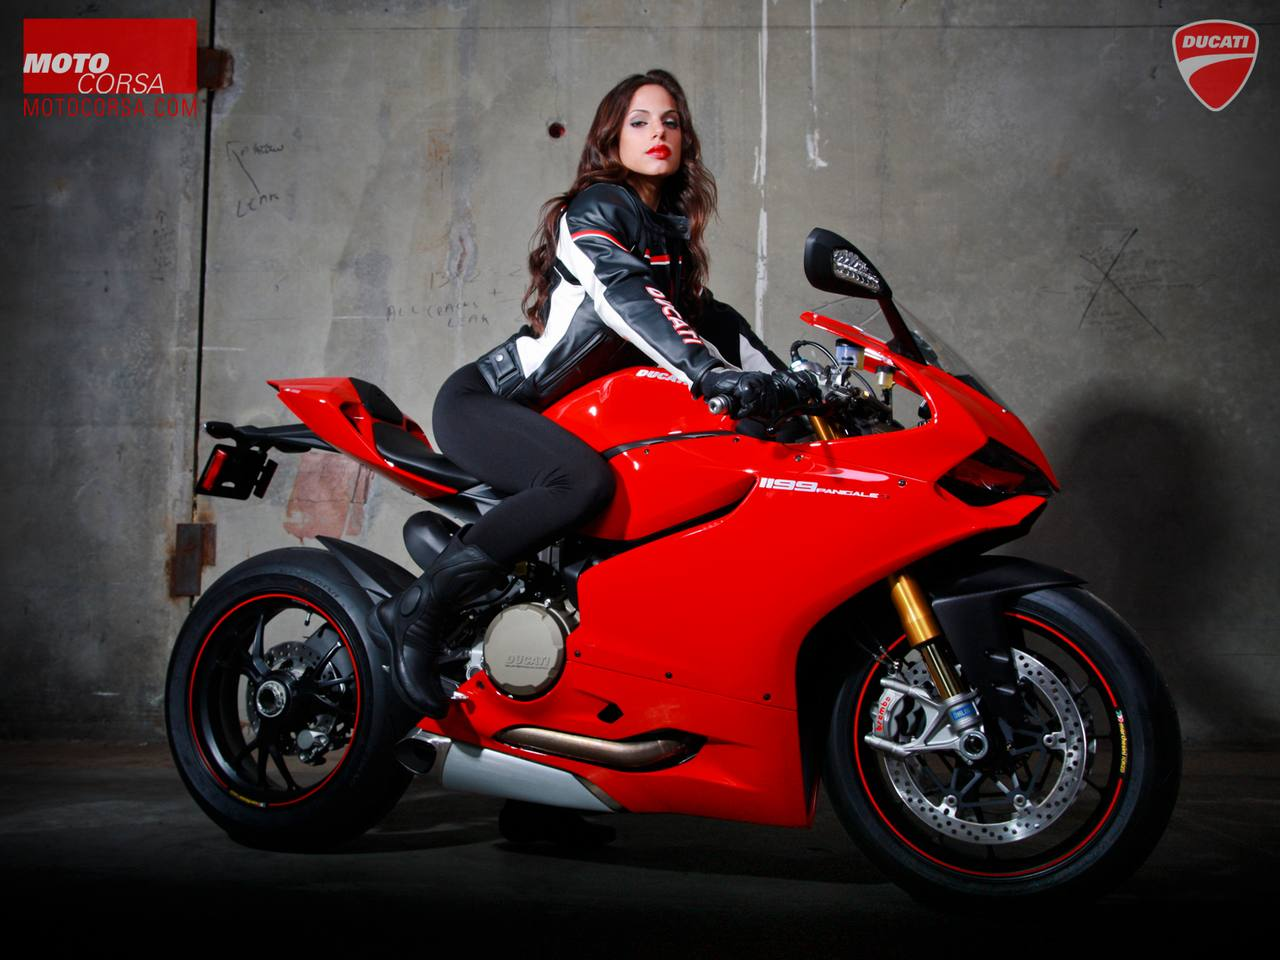 Ducati Panigale Girl 24190 Hd Wallpapers in Bikes   Imagescicom 1280x960